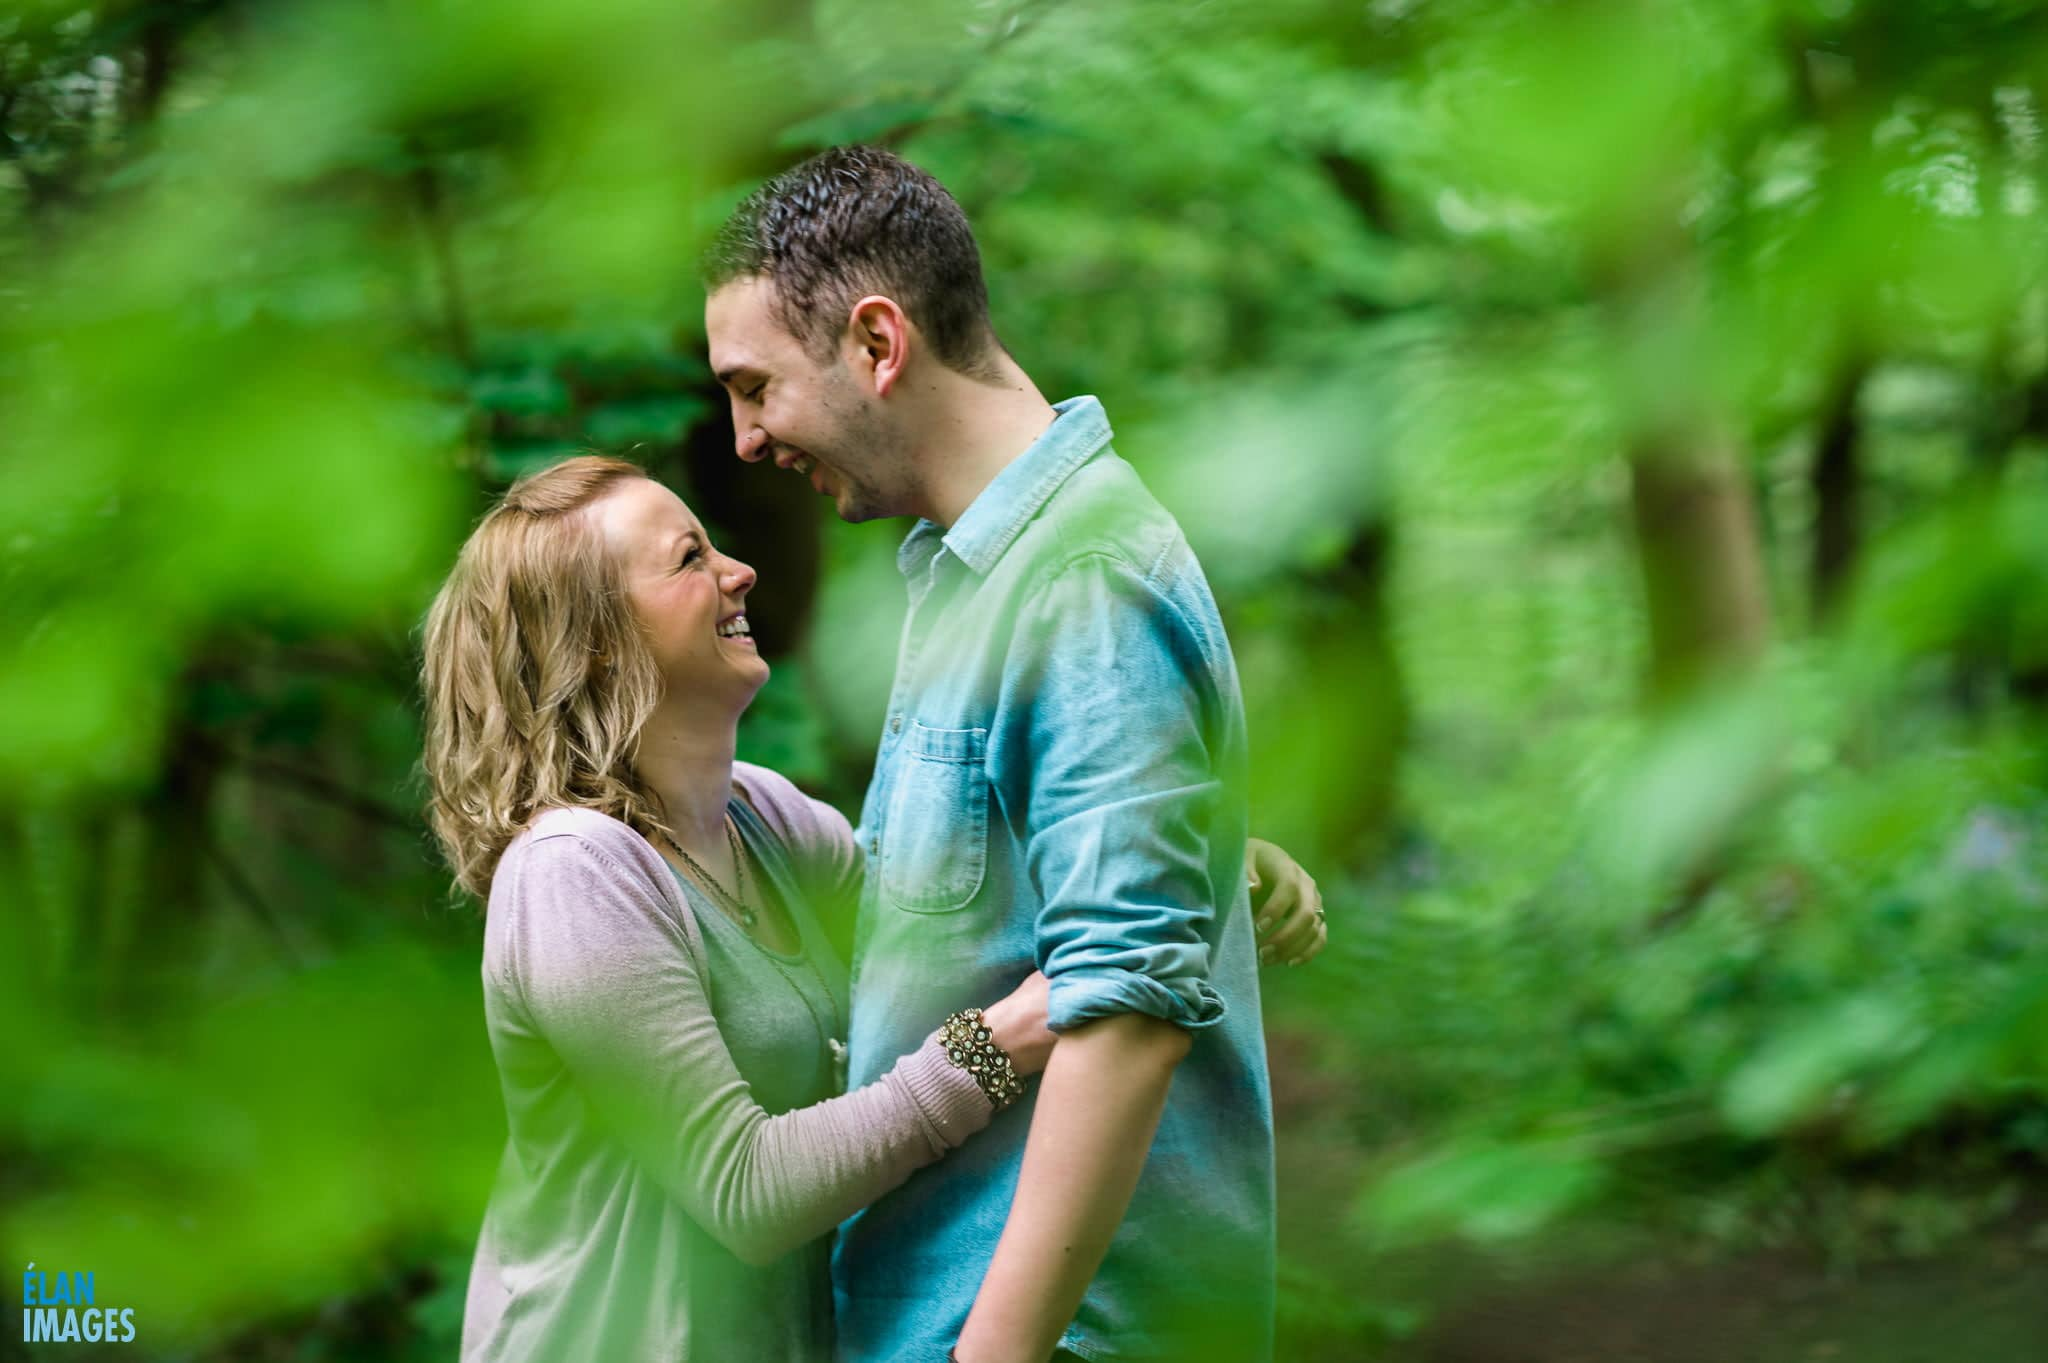 Engagement Photo Shoot in the Bluebell Woods near Bristol 11